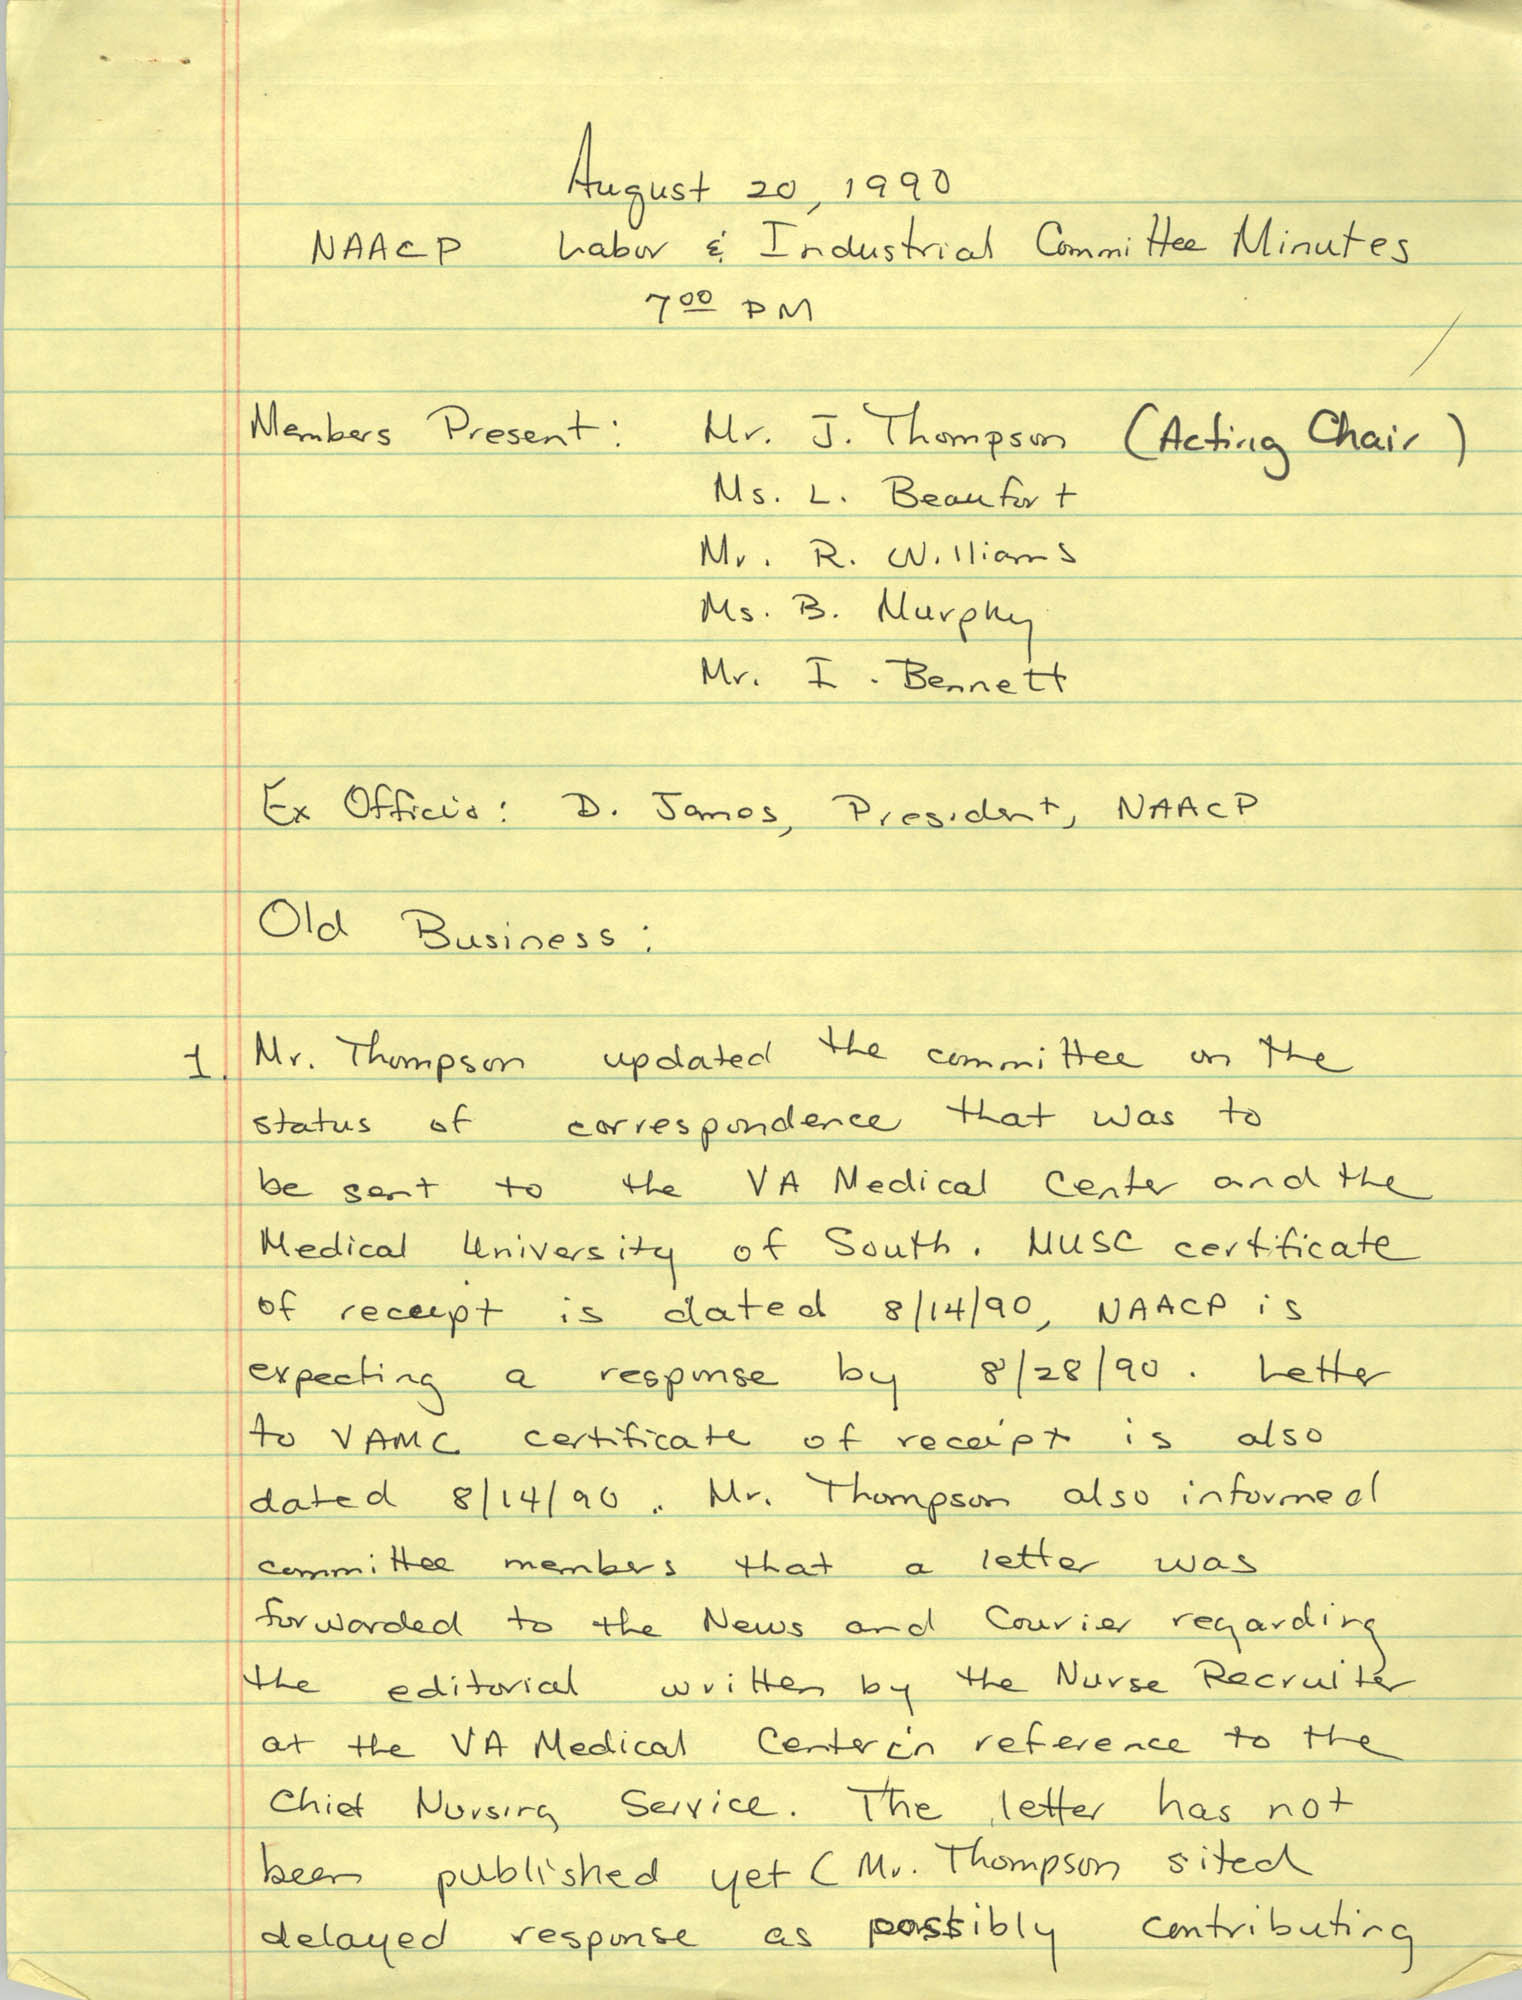 Charleston Branch of the NAACP Labor and Industry Committee Minutes, August 20, 1990